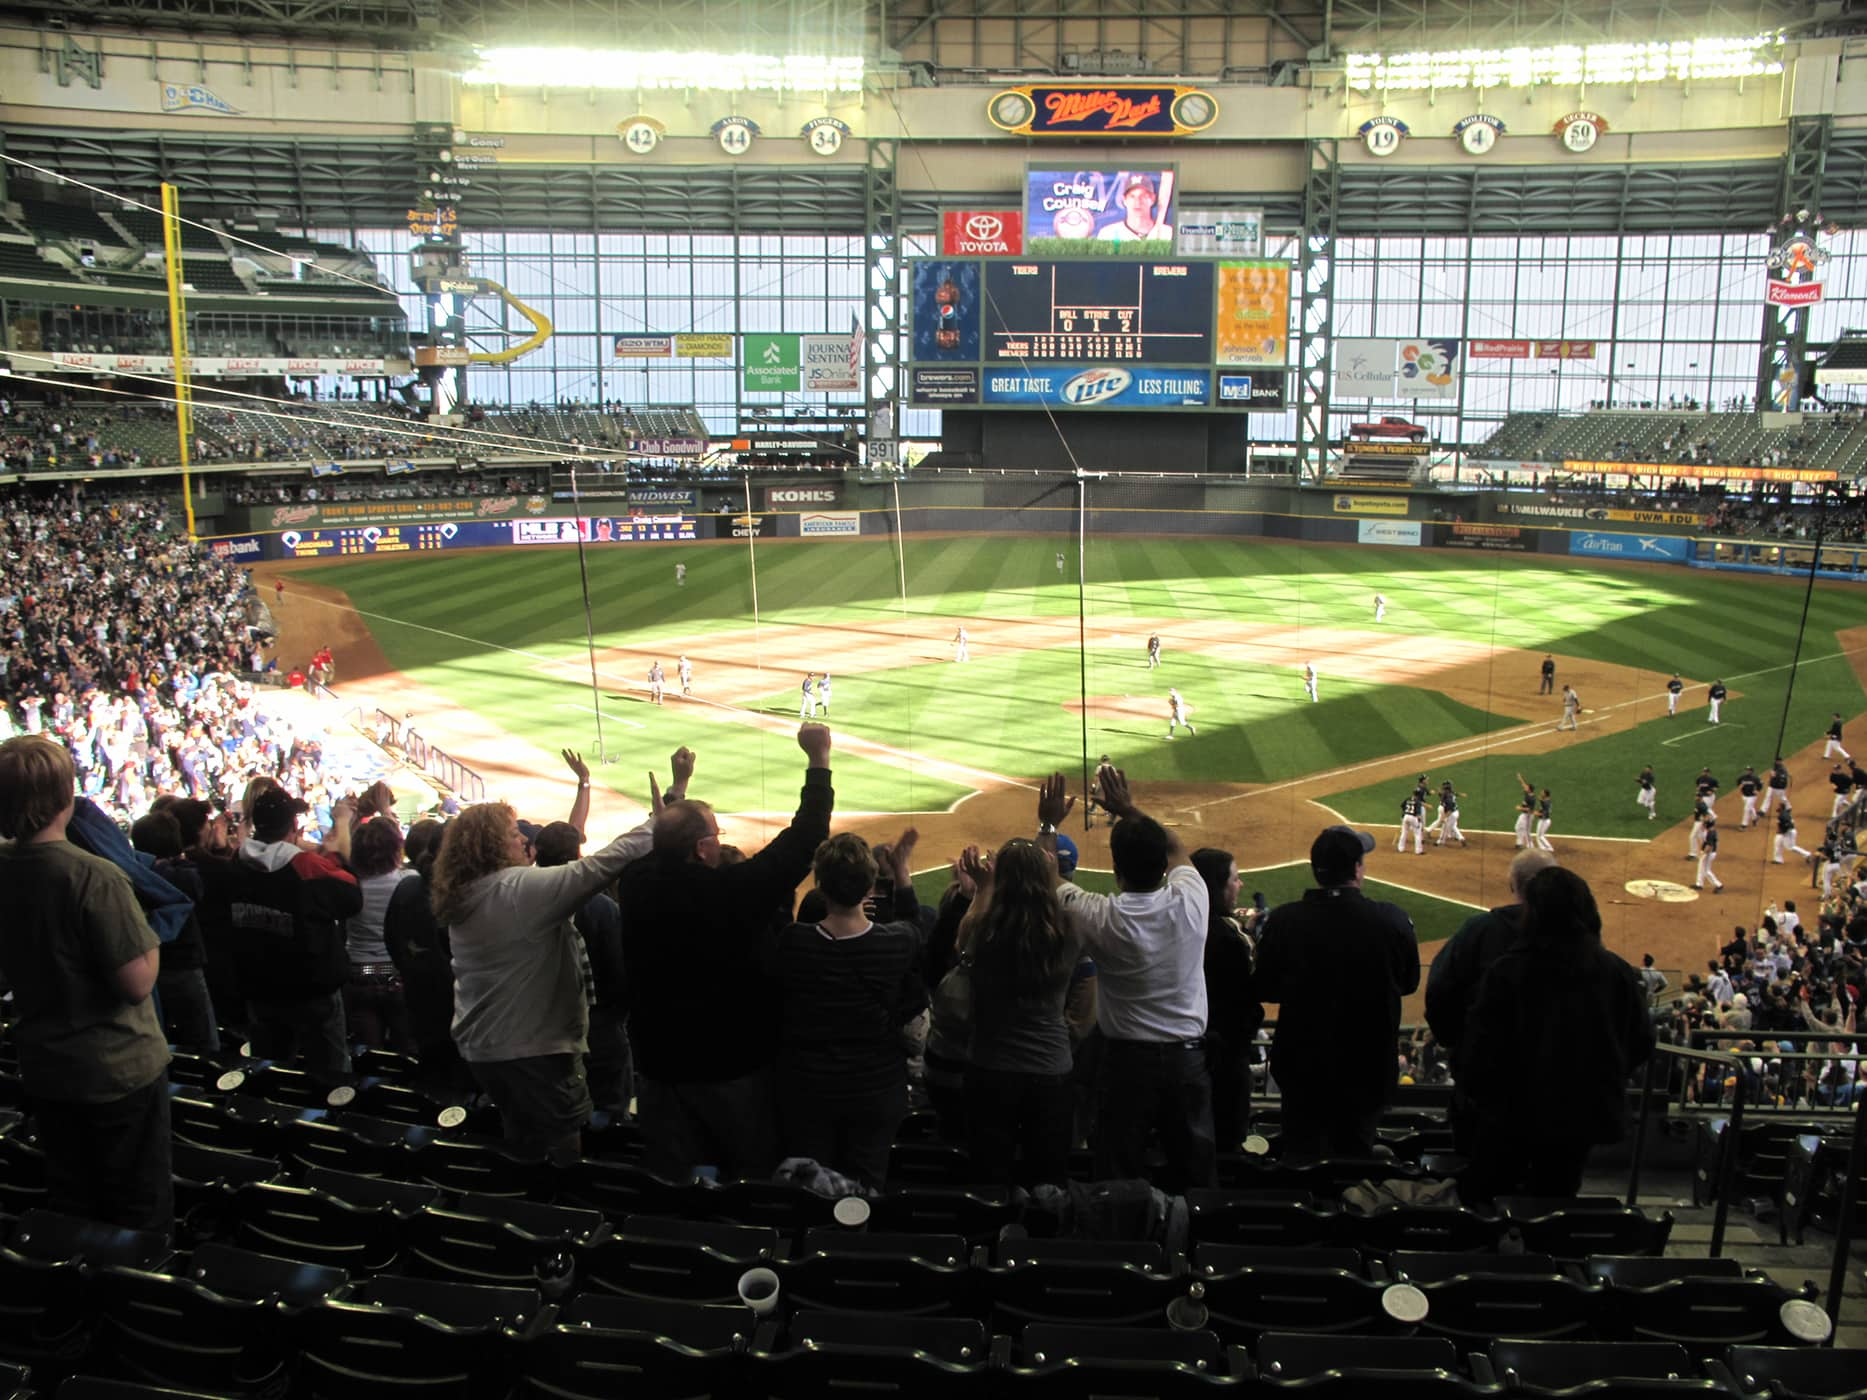 Brewers game at Miller Park in Milwaukee, Wisconsin